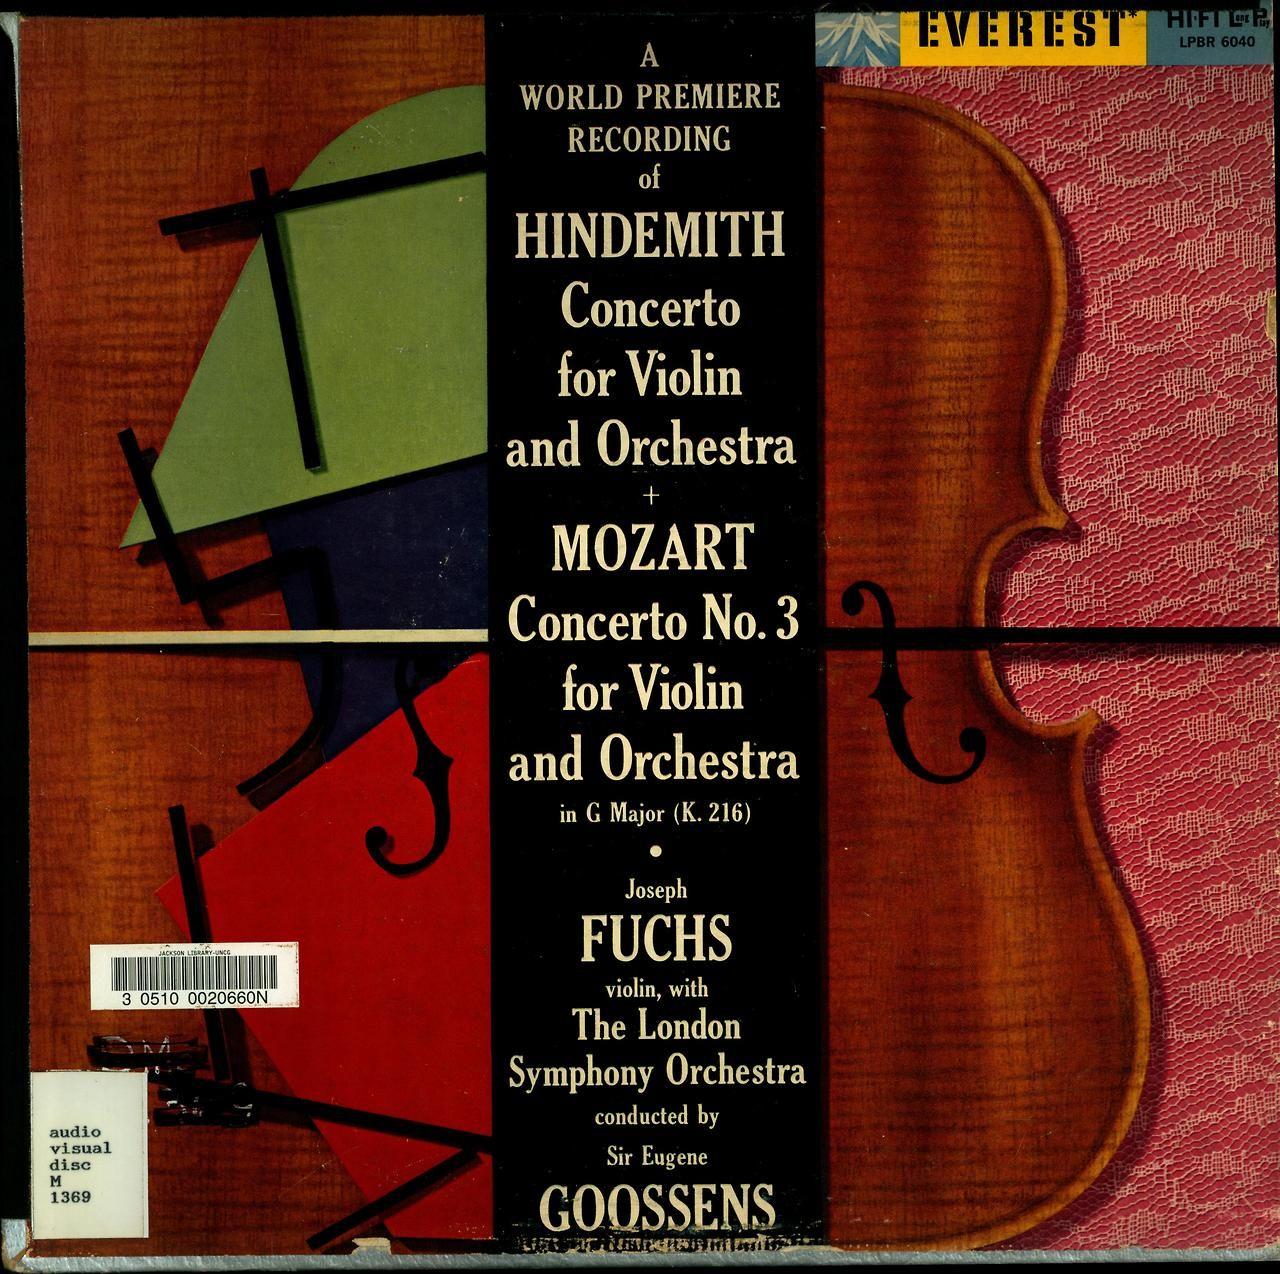 Hindemith- Concerto For Violin and Orchestra:Mozart- Concerto No. 3 for Violin and Orchestra  Joseph Fuchs, violin w: the London Symphony Orchestra (Sir Eugene Goossens)